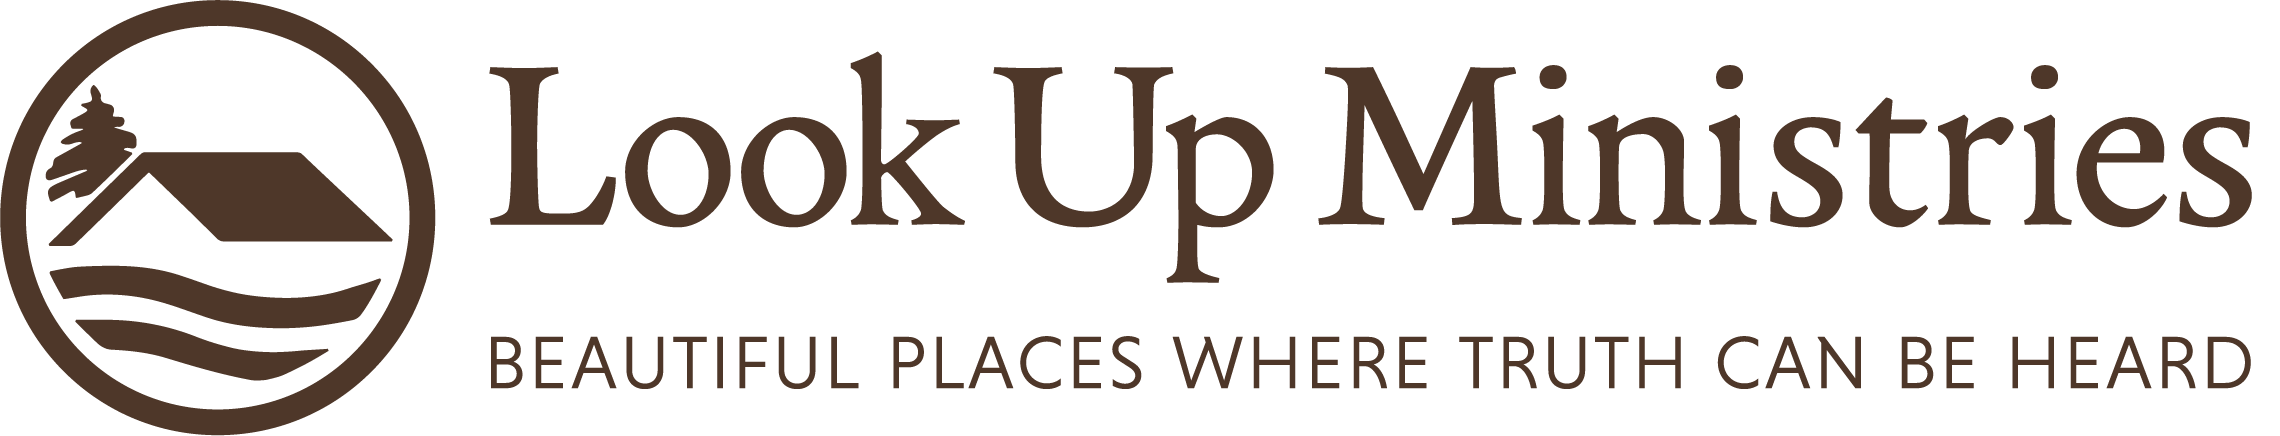 Look Up Ministries Logo